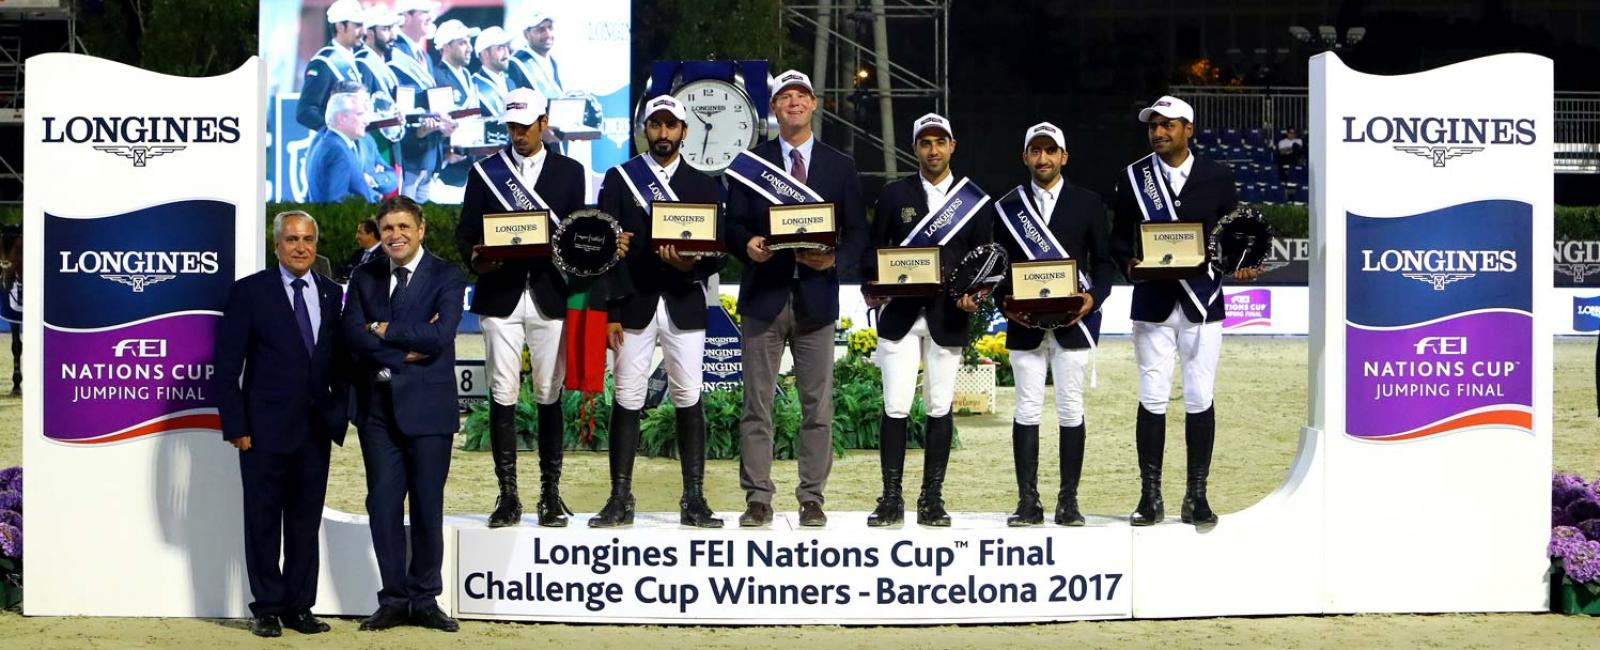 Team UAE earned first place at the Longines Challenge Cup